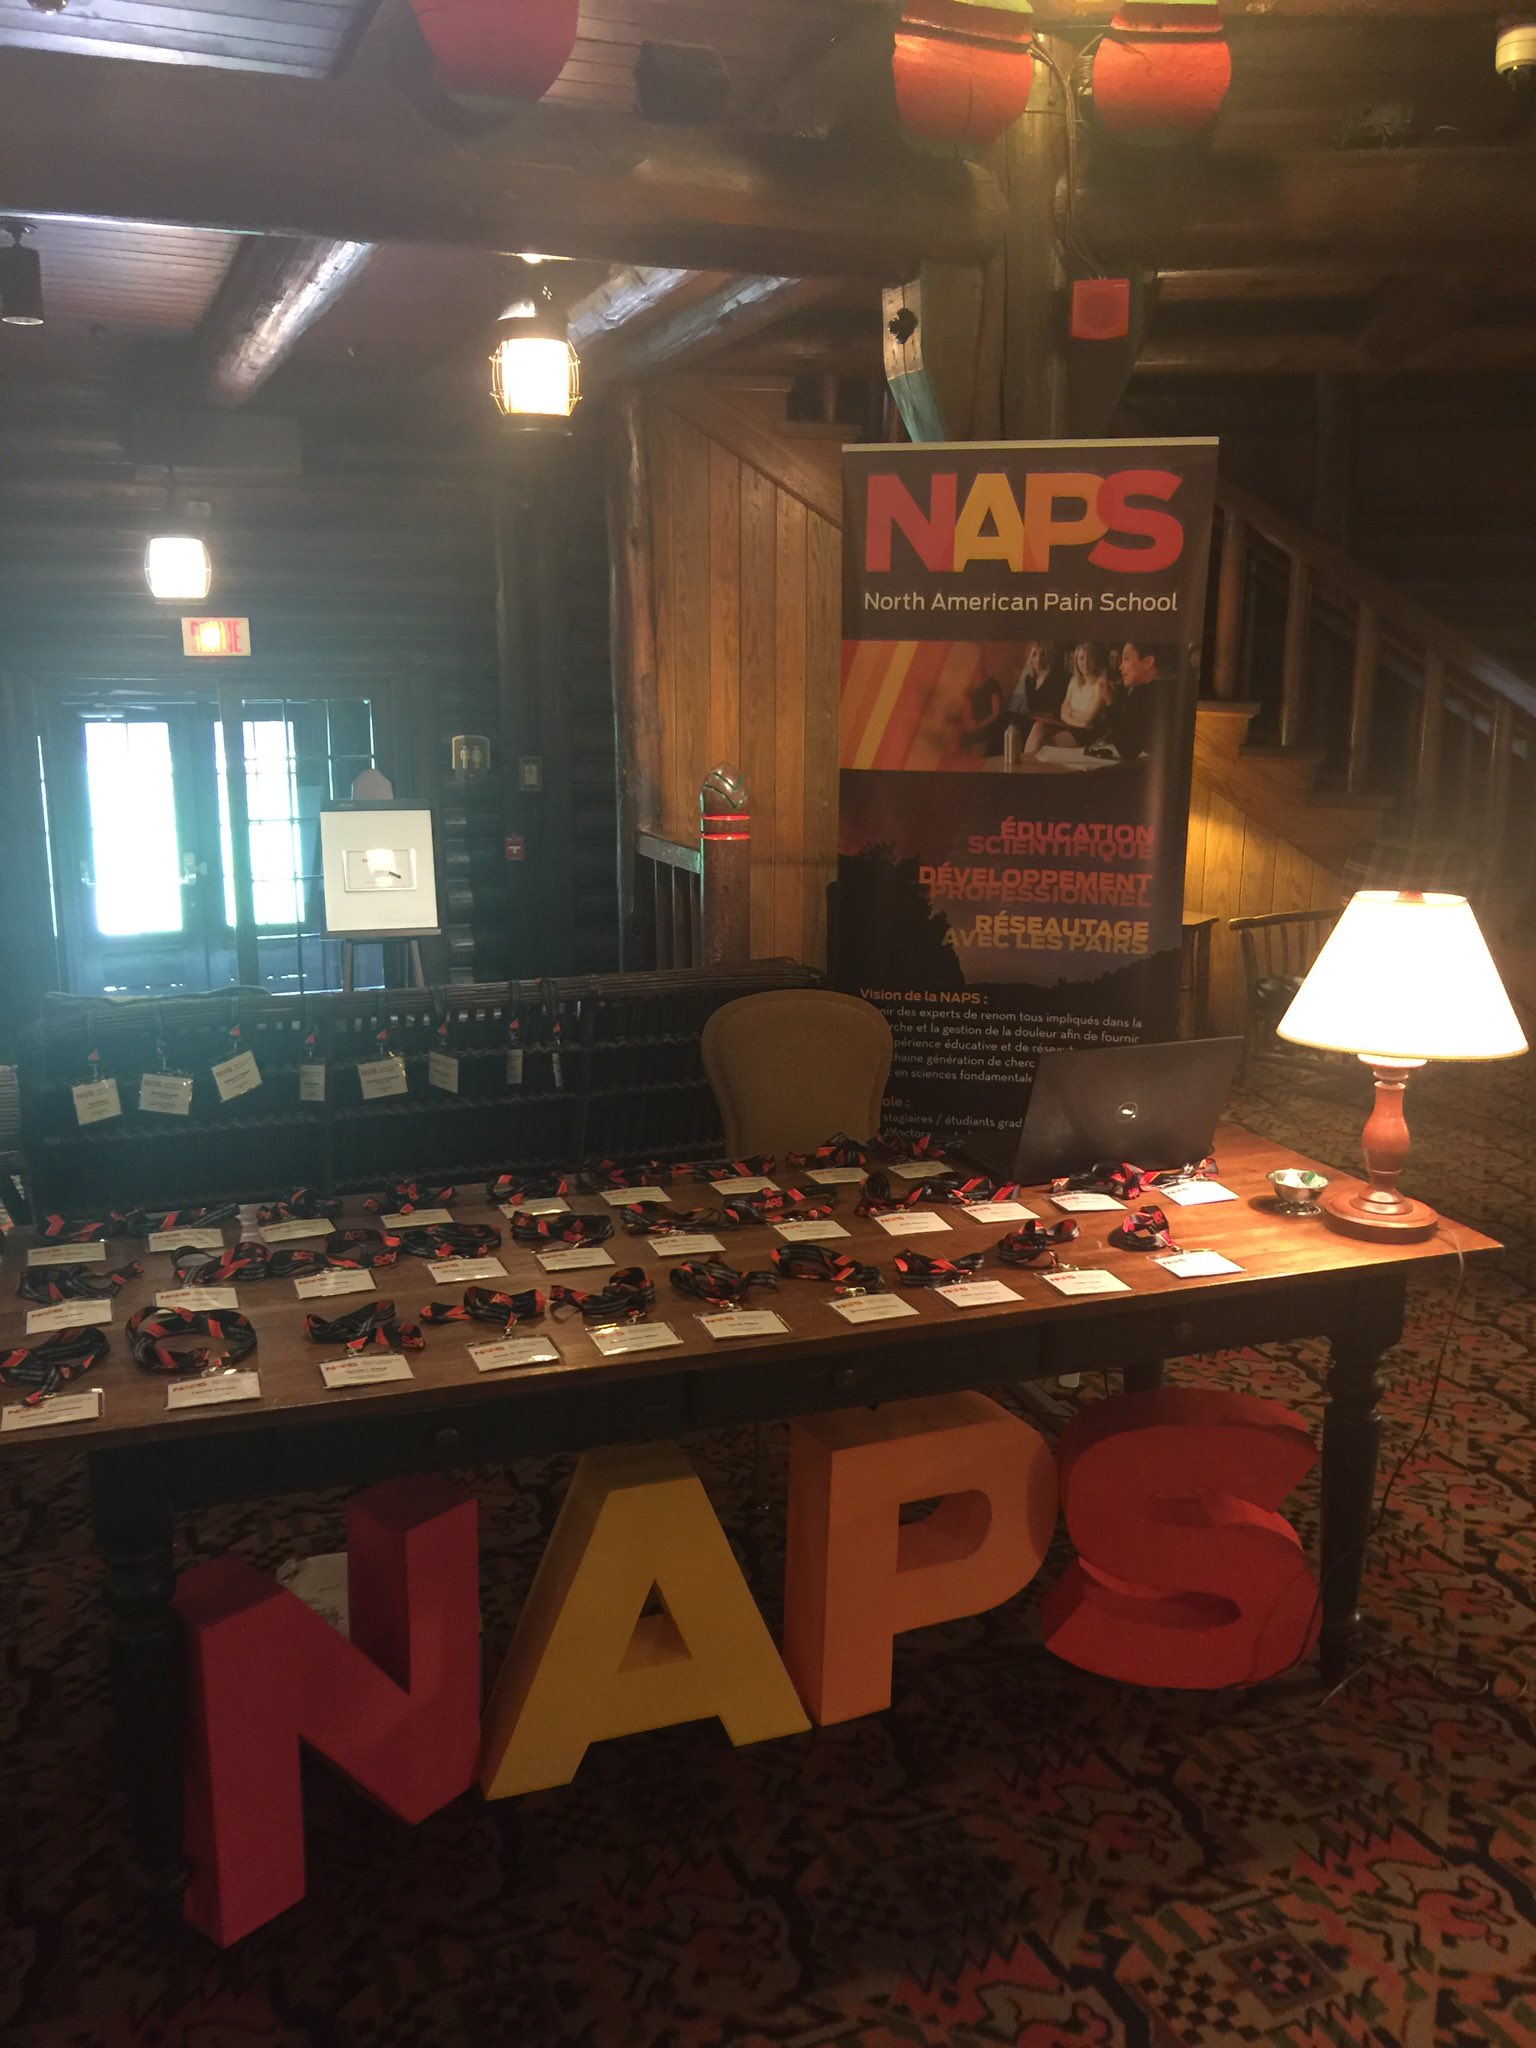 The #NAPainSchool registration desk is open for business! Looking forward to welcoming our trainees and visiting faculty. https://t.co/FKPOjqPR6w